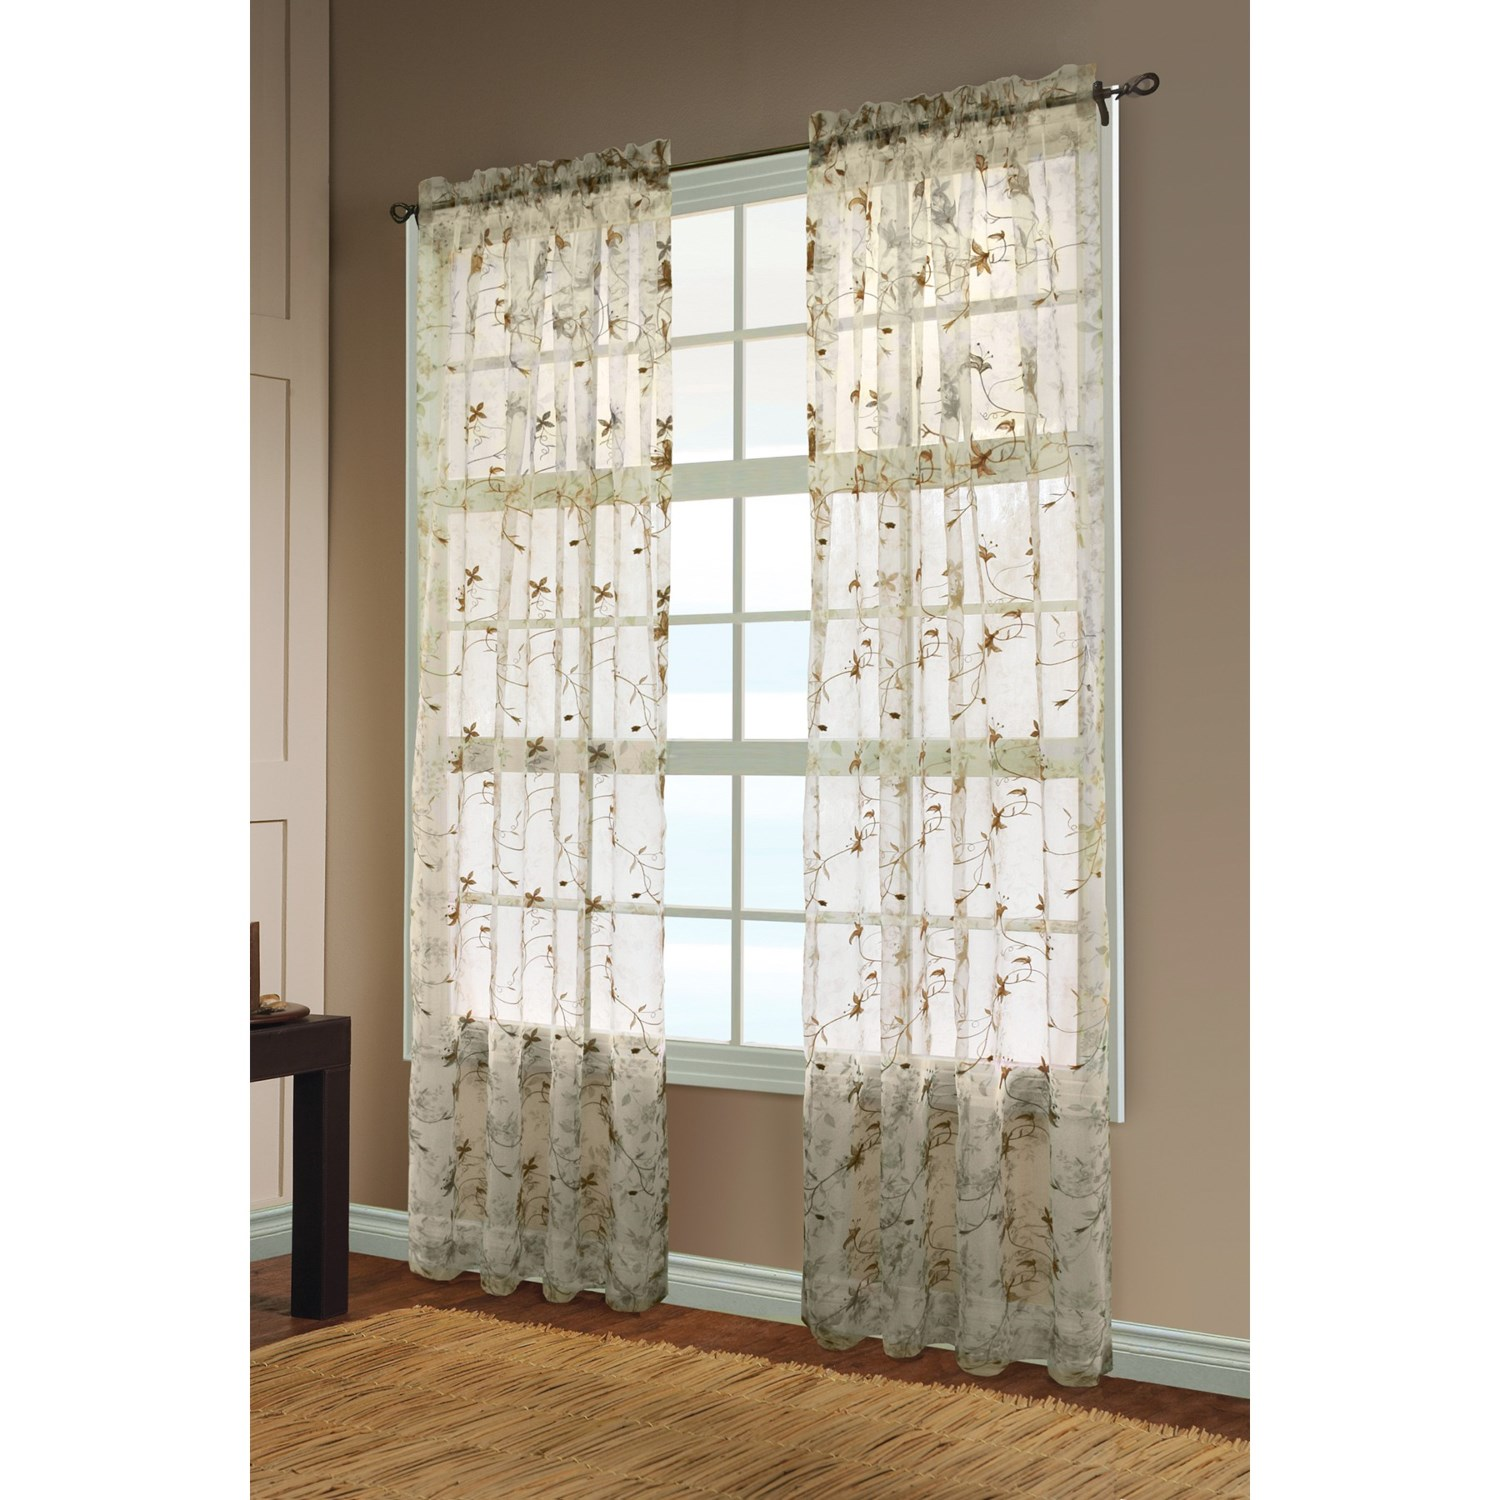 "Curtains Ideas sheers and curtains : ... Embroidered Floral-Print Sheer Curtains - 108x84"", Rod-Pocket Top"